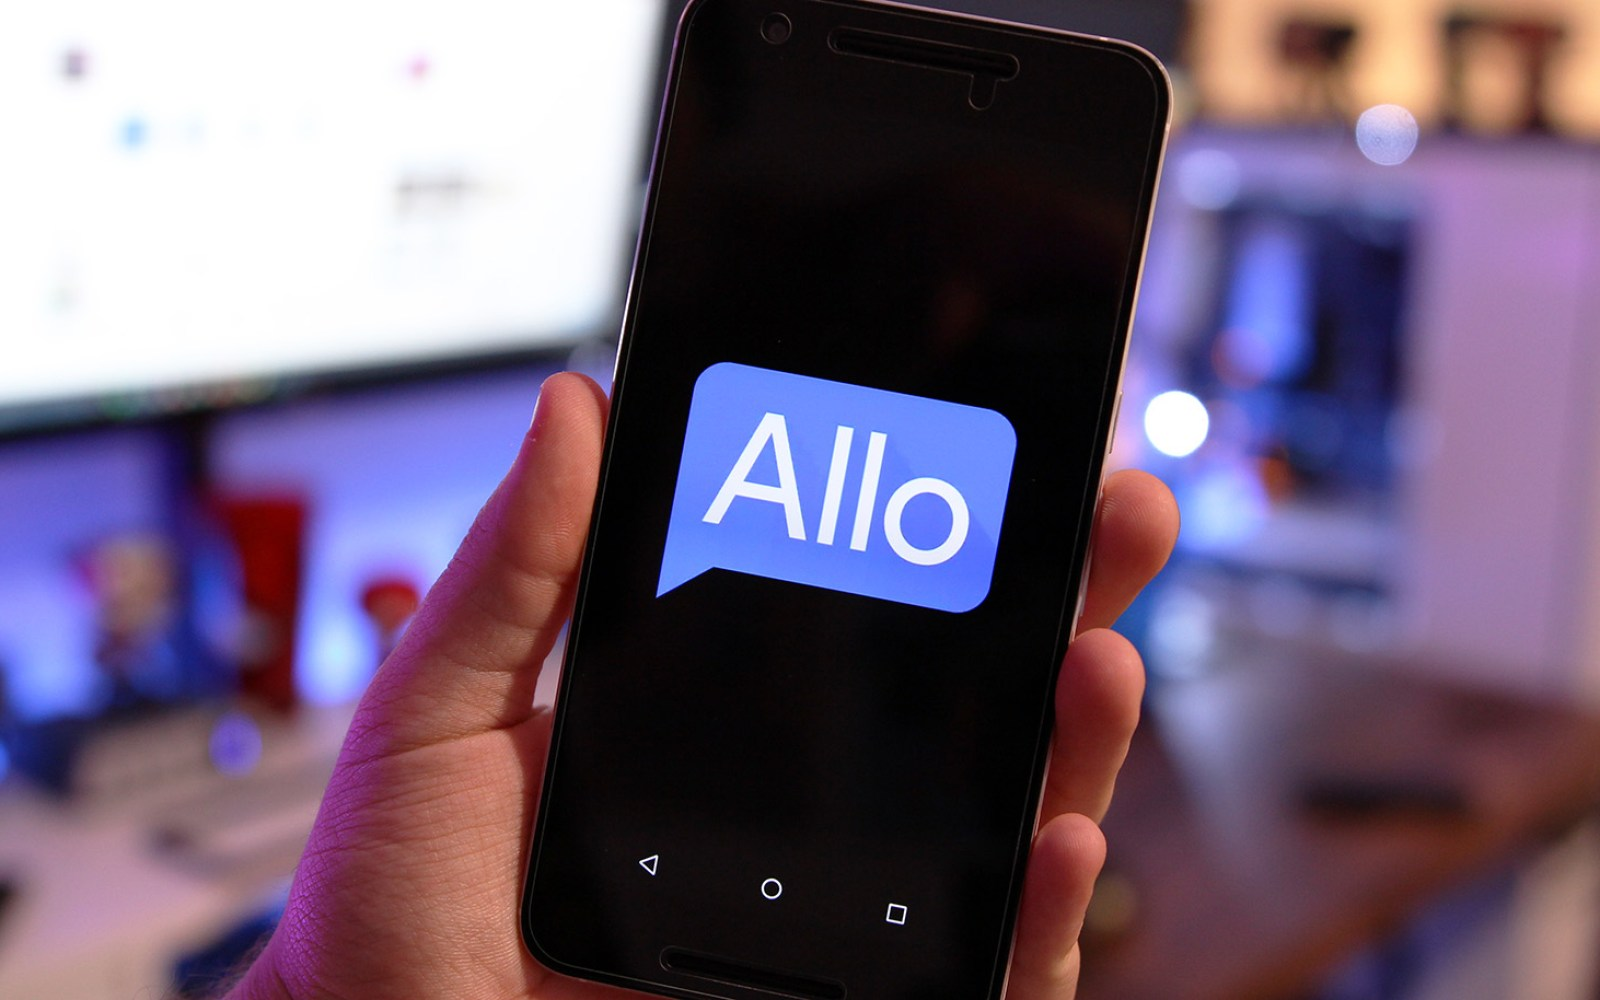 Google's new chat app Allo has updates on the way, including potential Duo integration